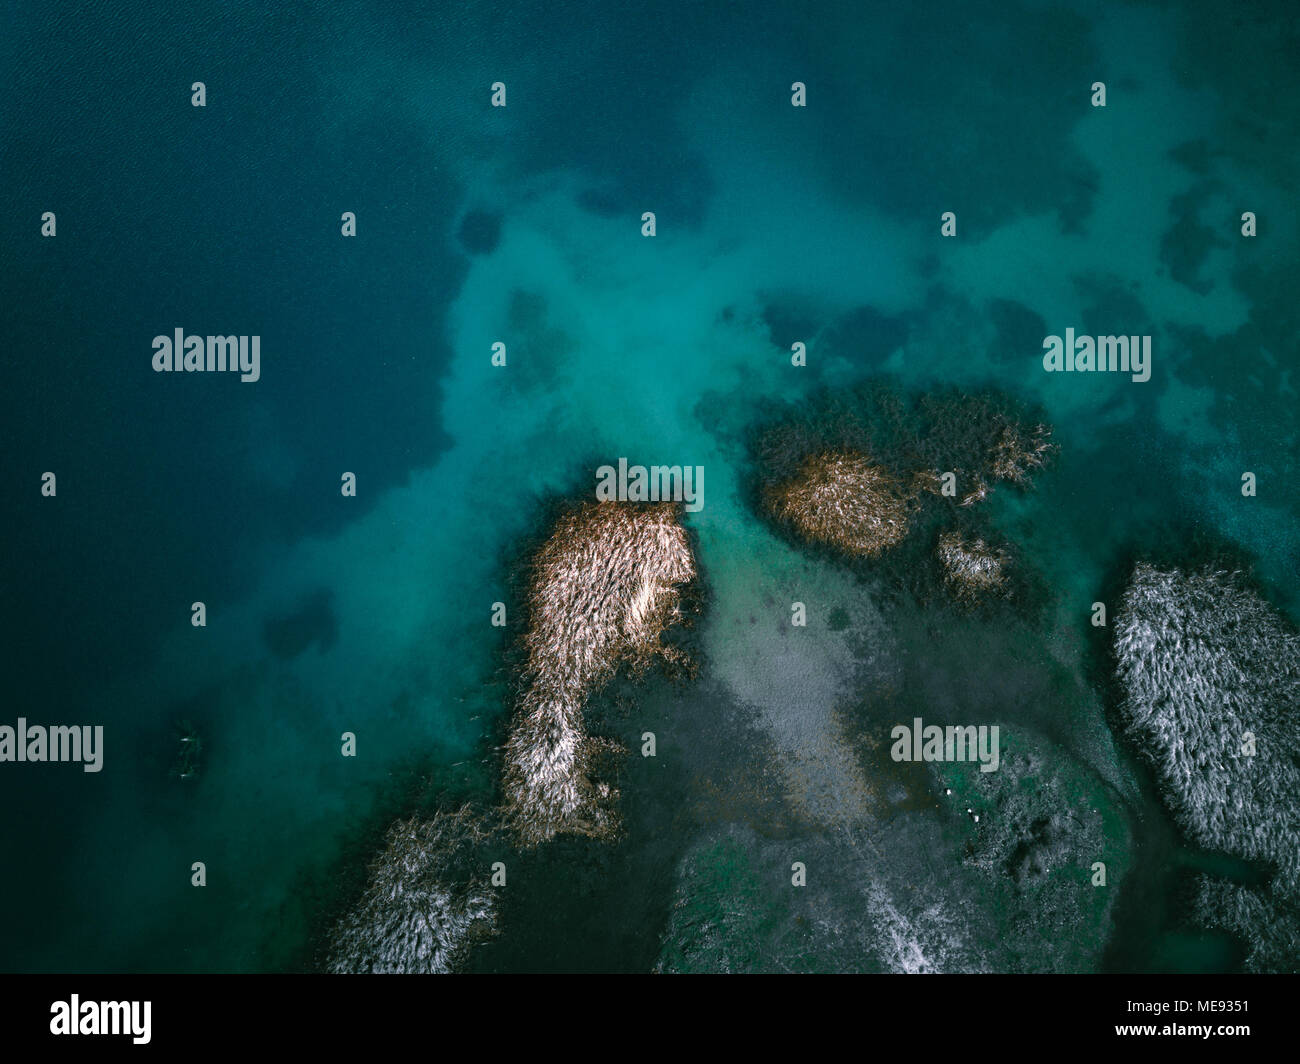 This is a drone shot from lake doxa in Greece. The water had this combination of turquoise and green color and created interesting patterns. - Stock Image